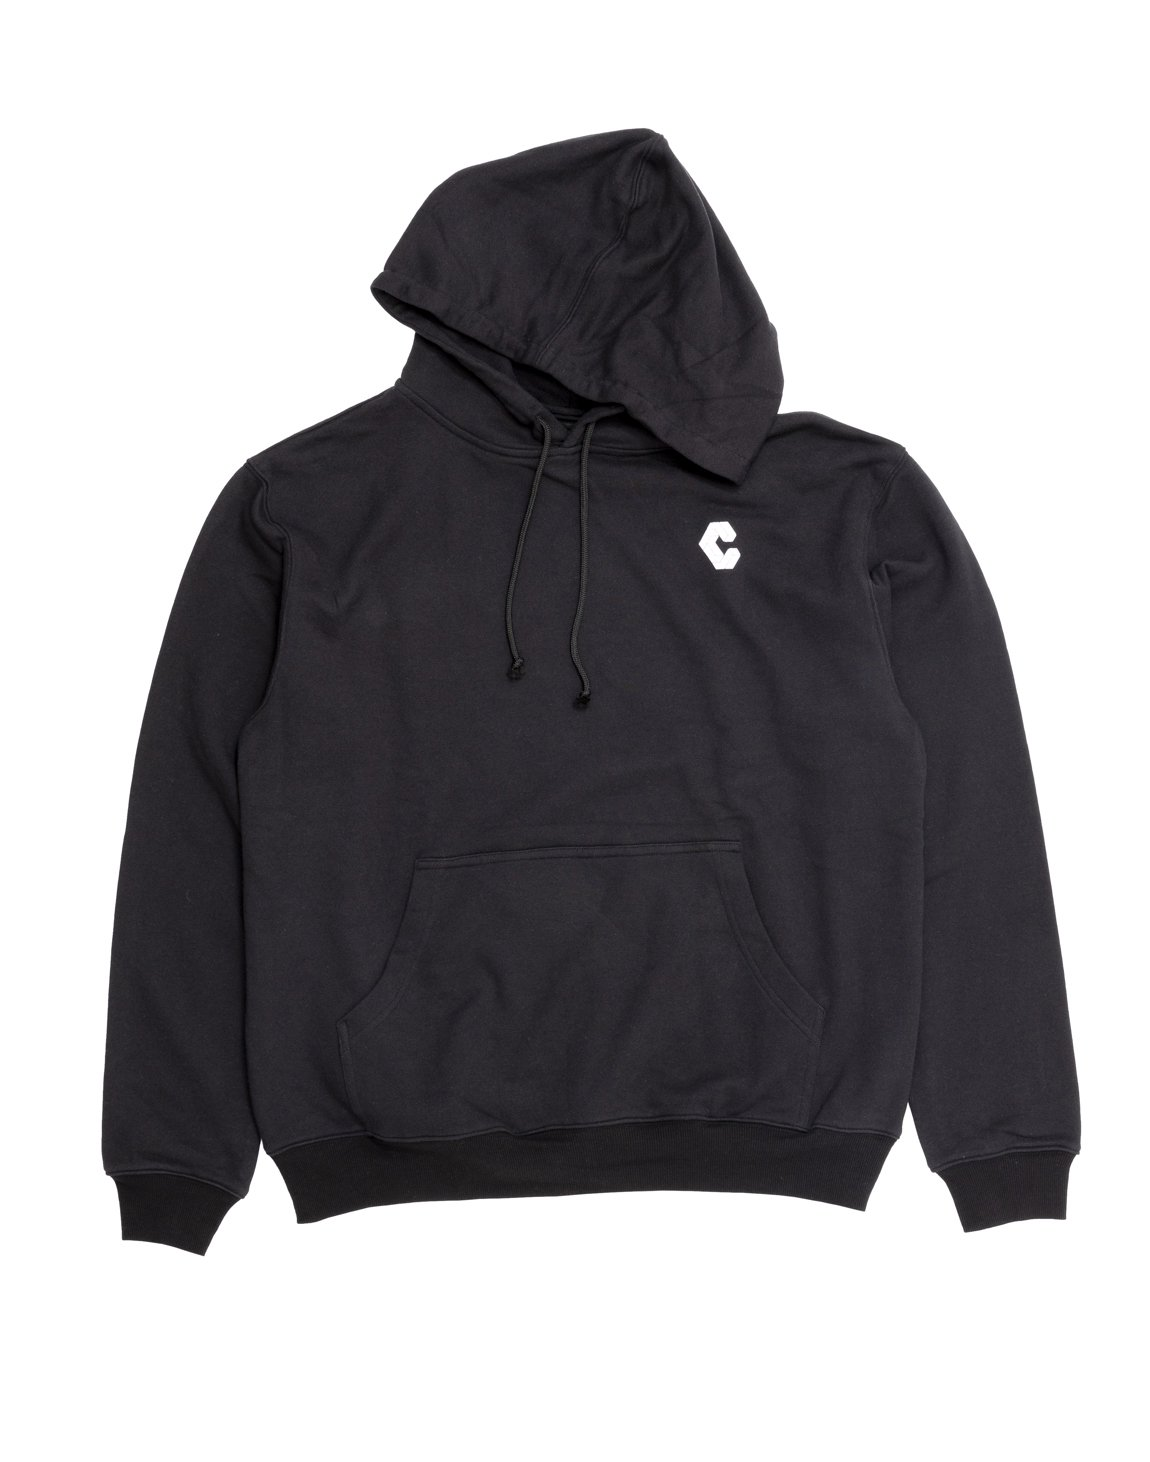 CRONOS GUESS THE NUMBERS  PARKA 【BLACK】